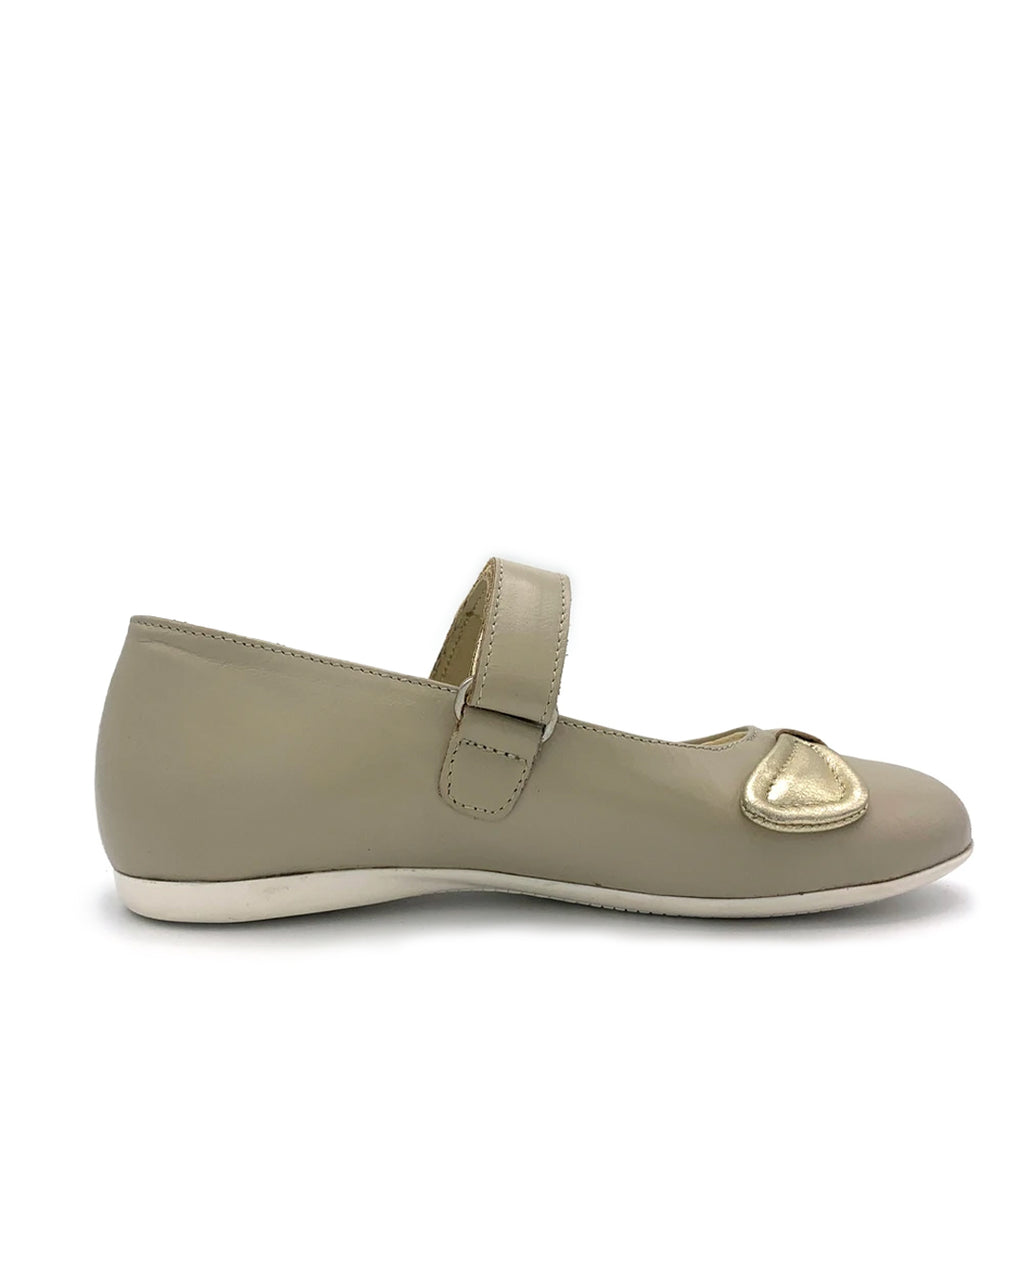 Beige Leather Mary Jane Shoe with Strap